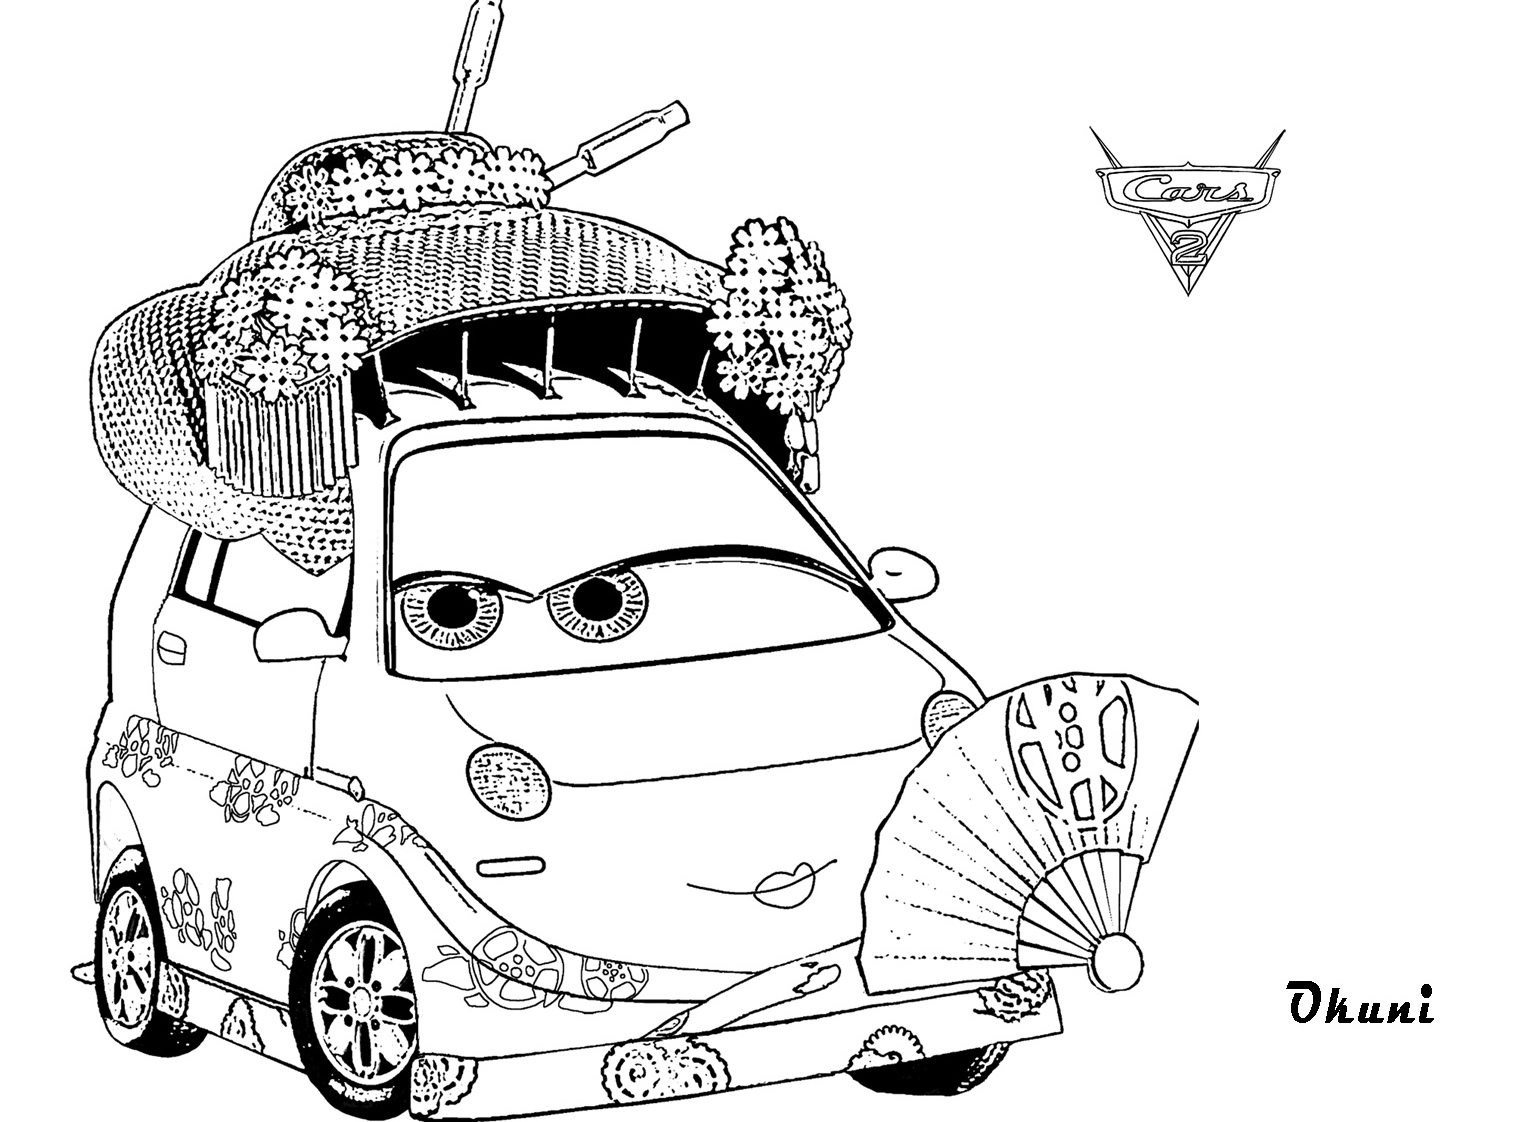 Okuni Coloring Pages for Kids Cars 2 to Print Of Disney Car Coloring Pages Cars Free Download